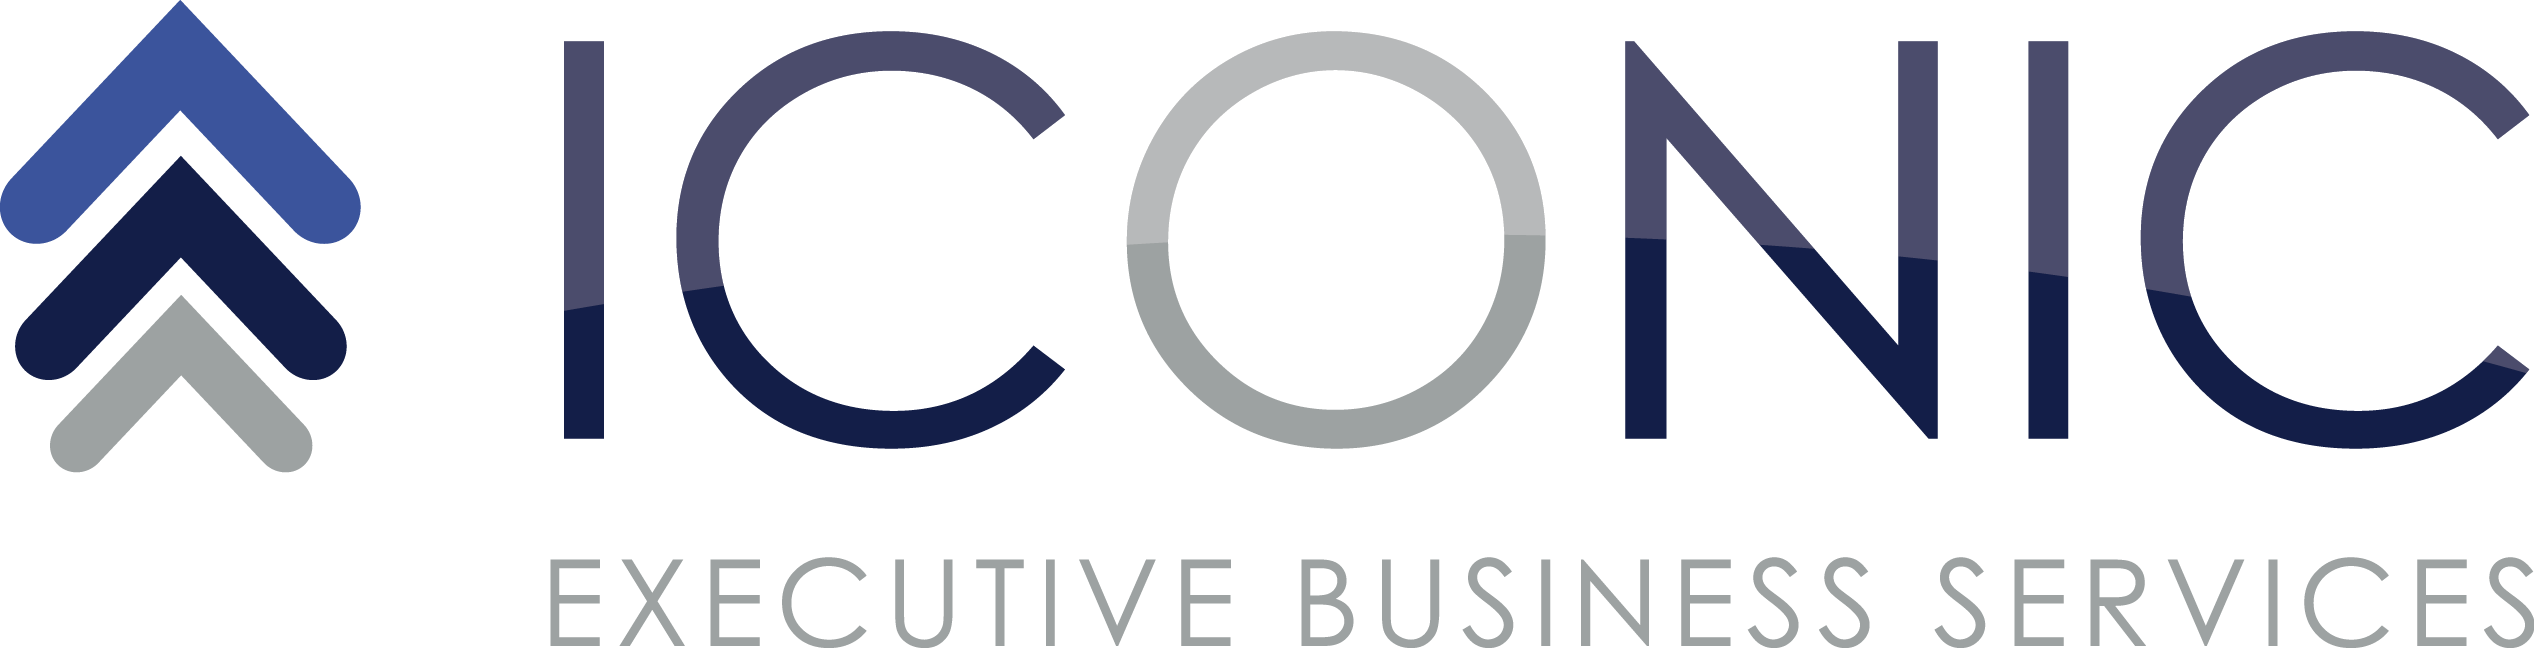 Iconic Executive Business Services